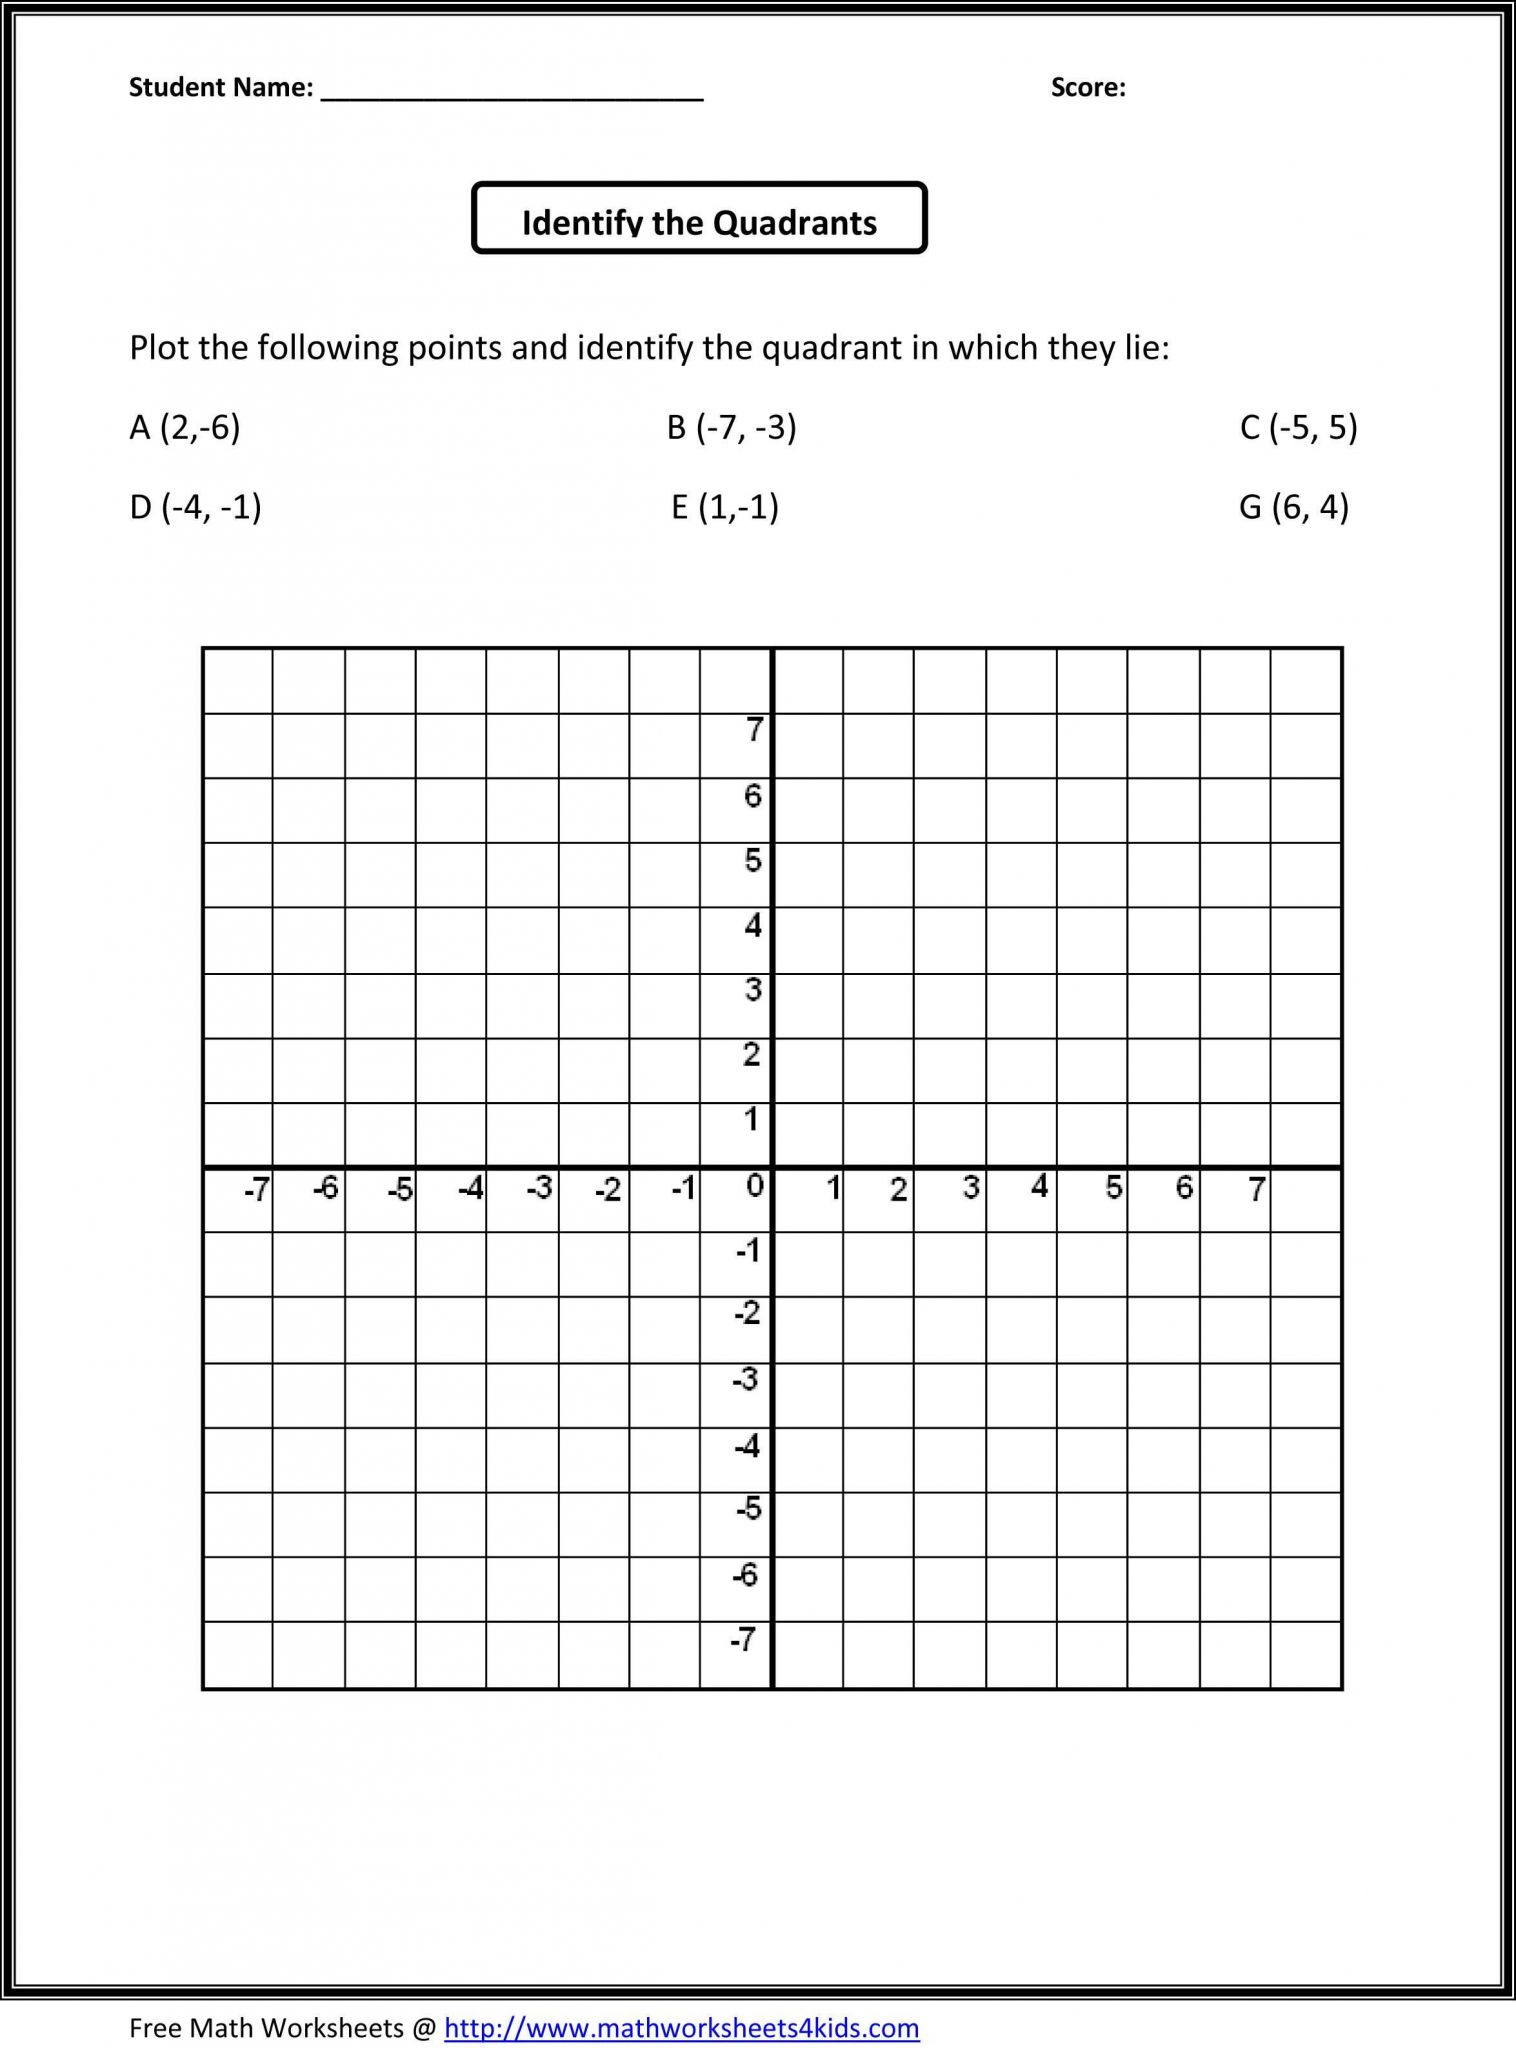 Elementary Teacher Worksheets together with 5th Grade Math Worksheet School Pinterest